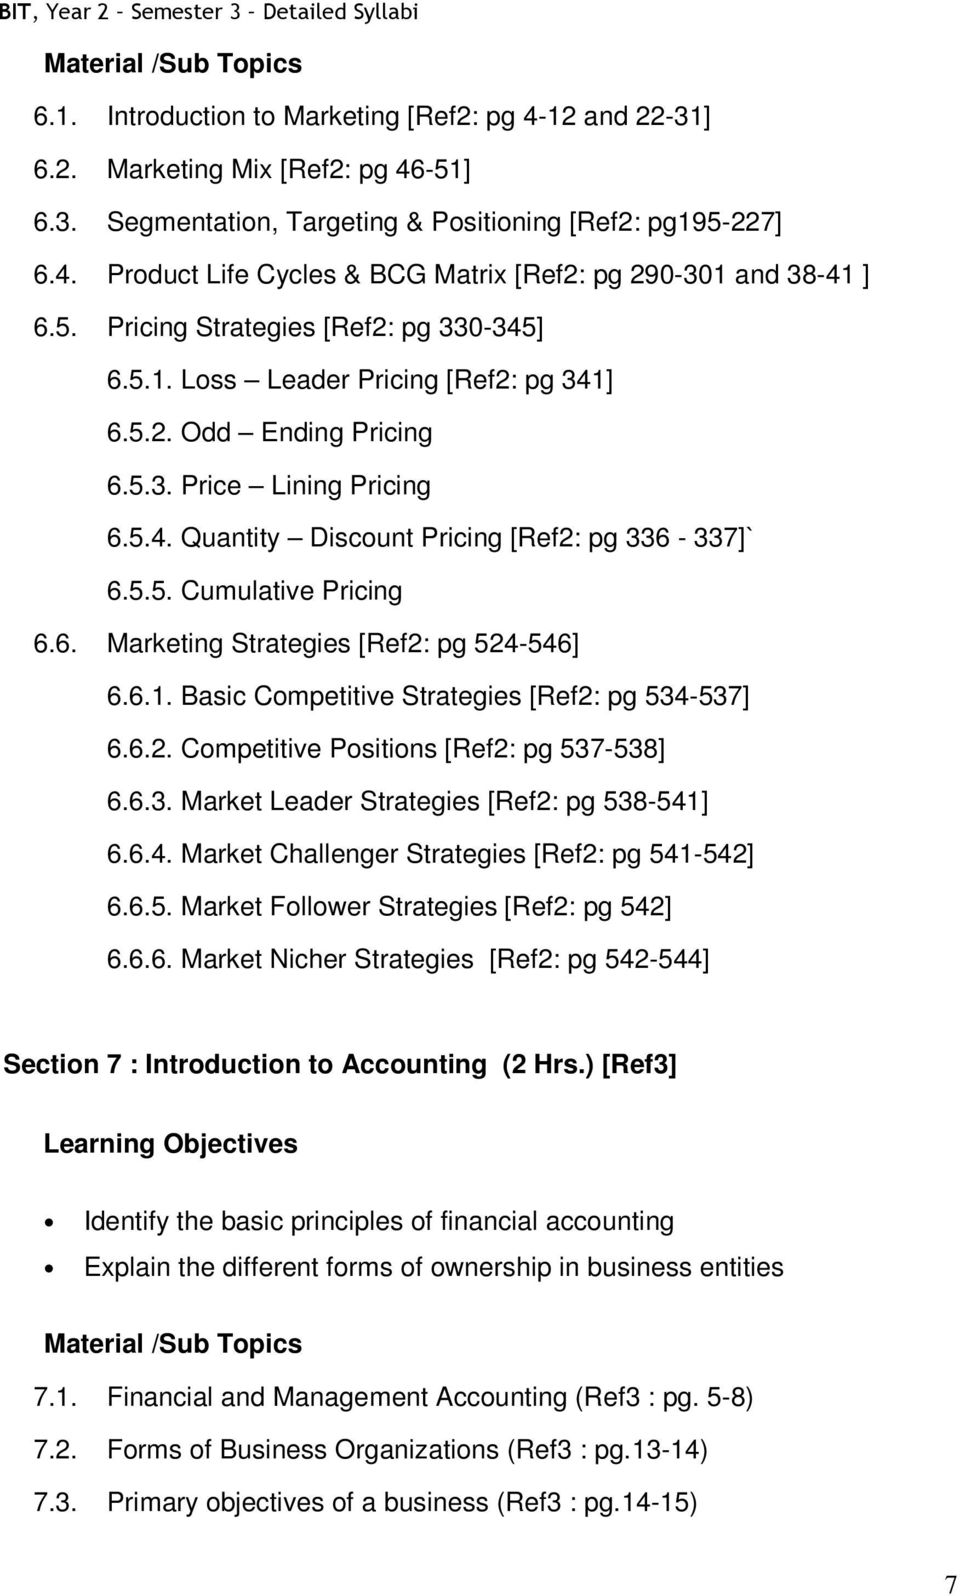 6. Marketing Strategies [Ref2: pg 524-546] 6.6.1. Basic Competitive Strategies [Ref2: pg 534-537] 6.6.2. Competitive Positions [Ref2: pg 537-538] 6.6.3. Market Leader Strategies [Ref2: pg 538-541] 6.